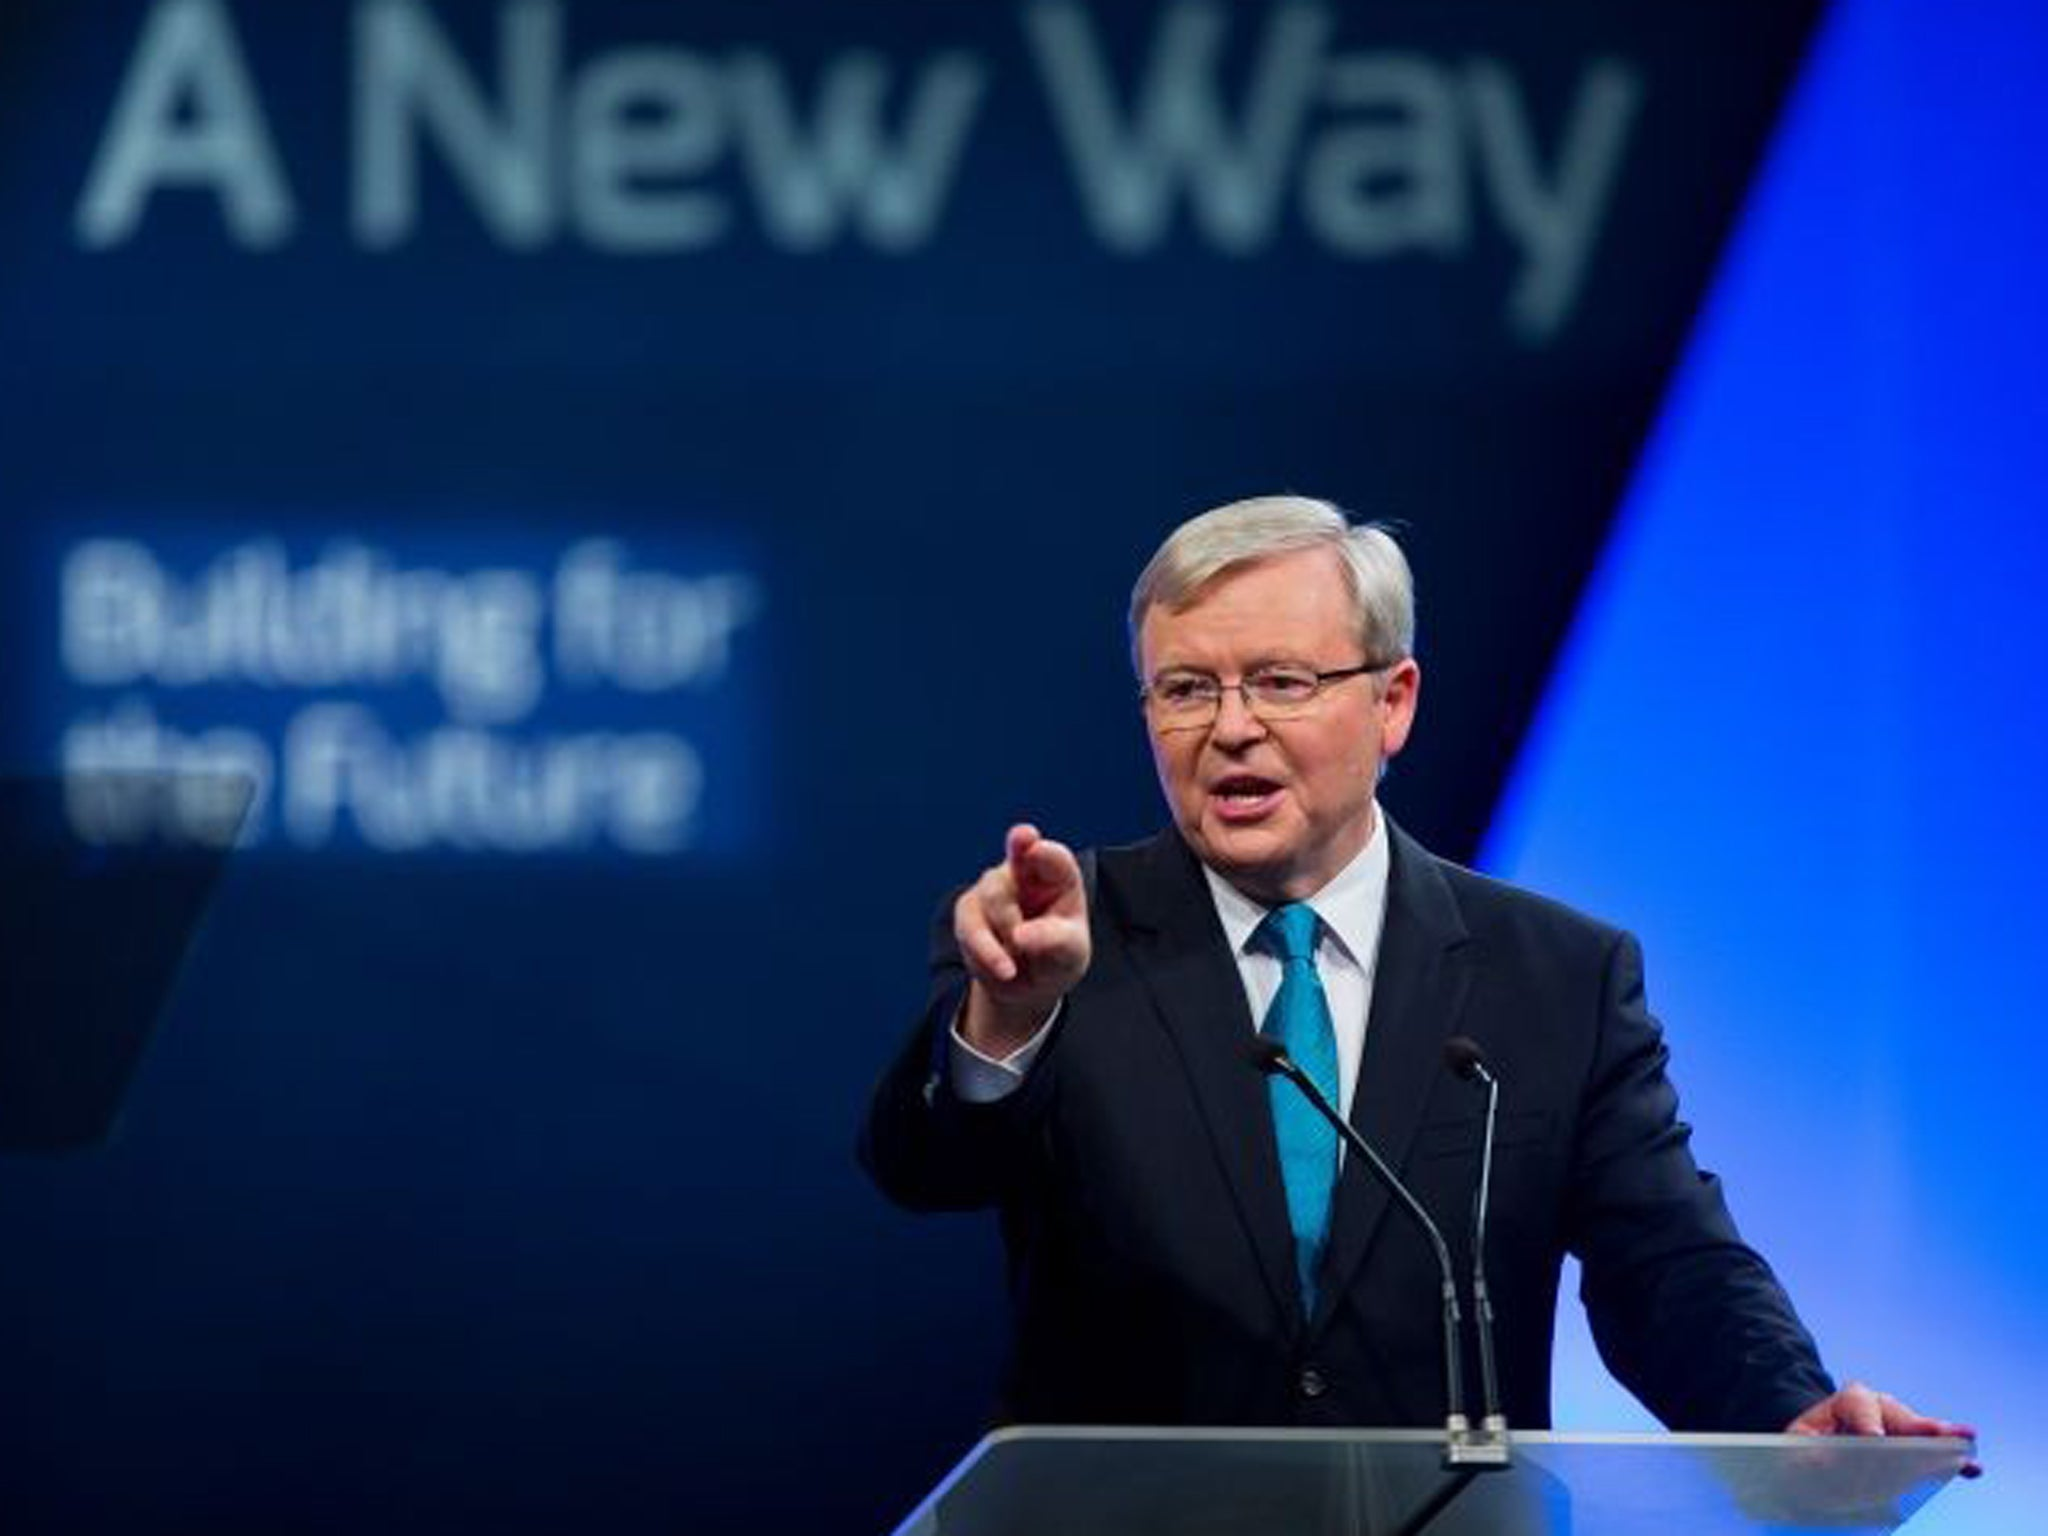 Australia Election Kevin Rudd Defends New Gay Marriage Stance The Independent The Independent